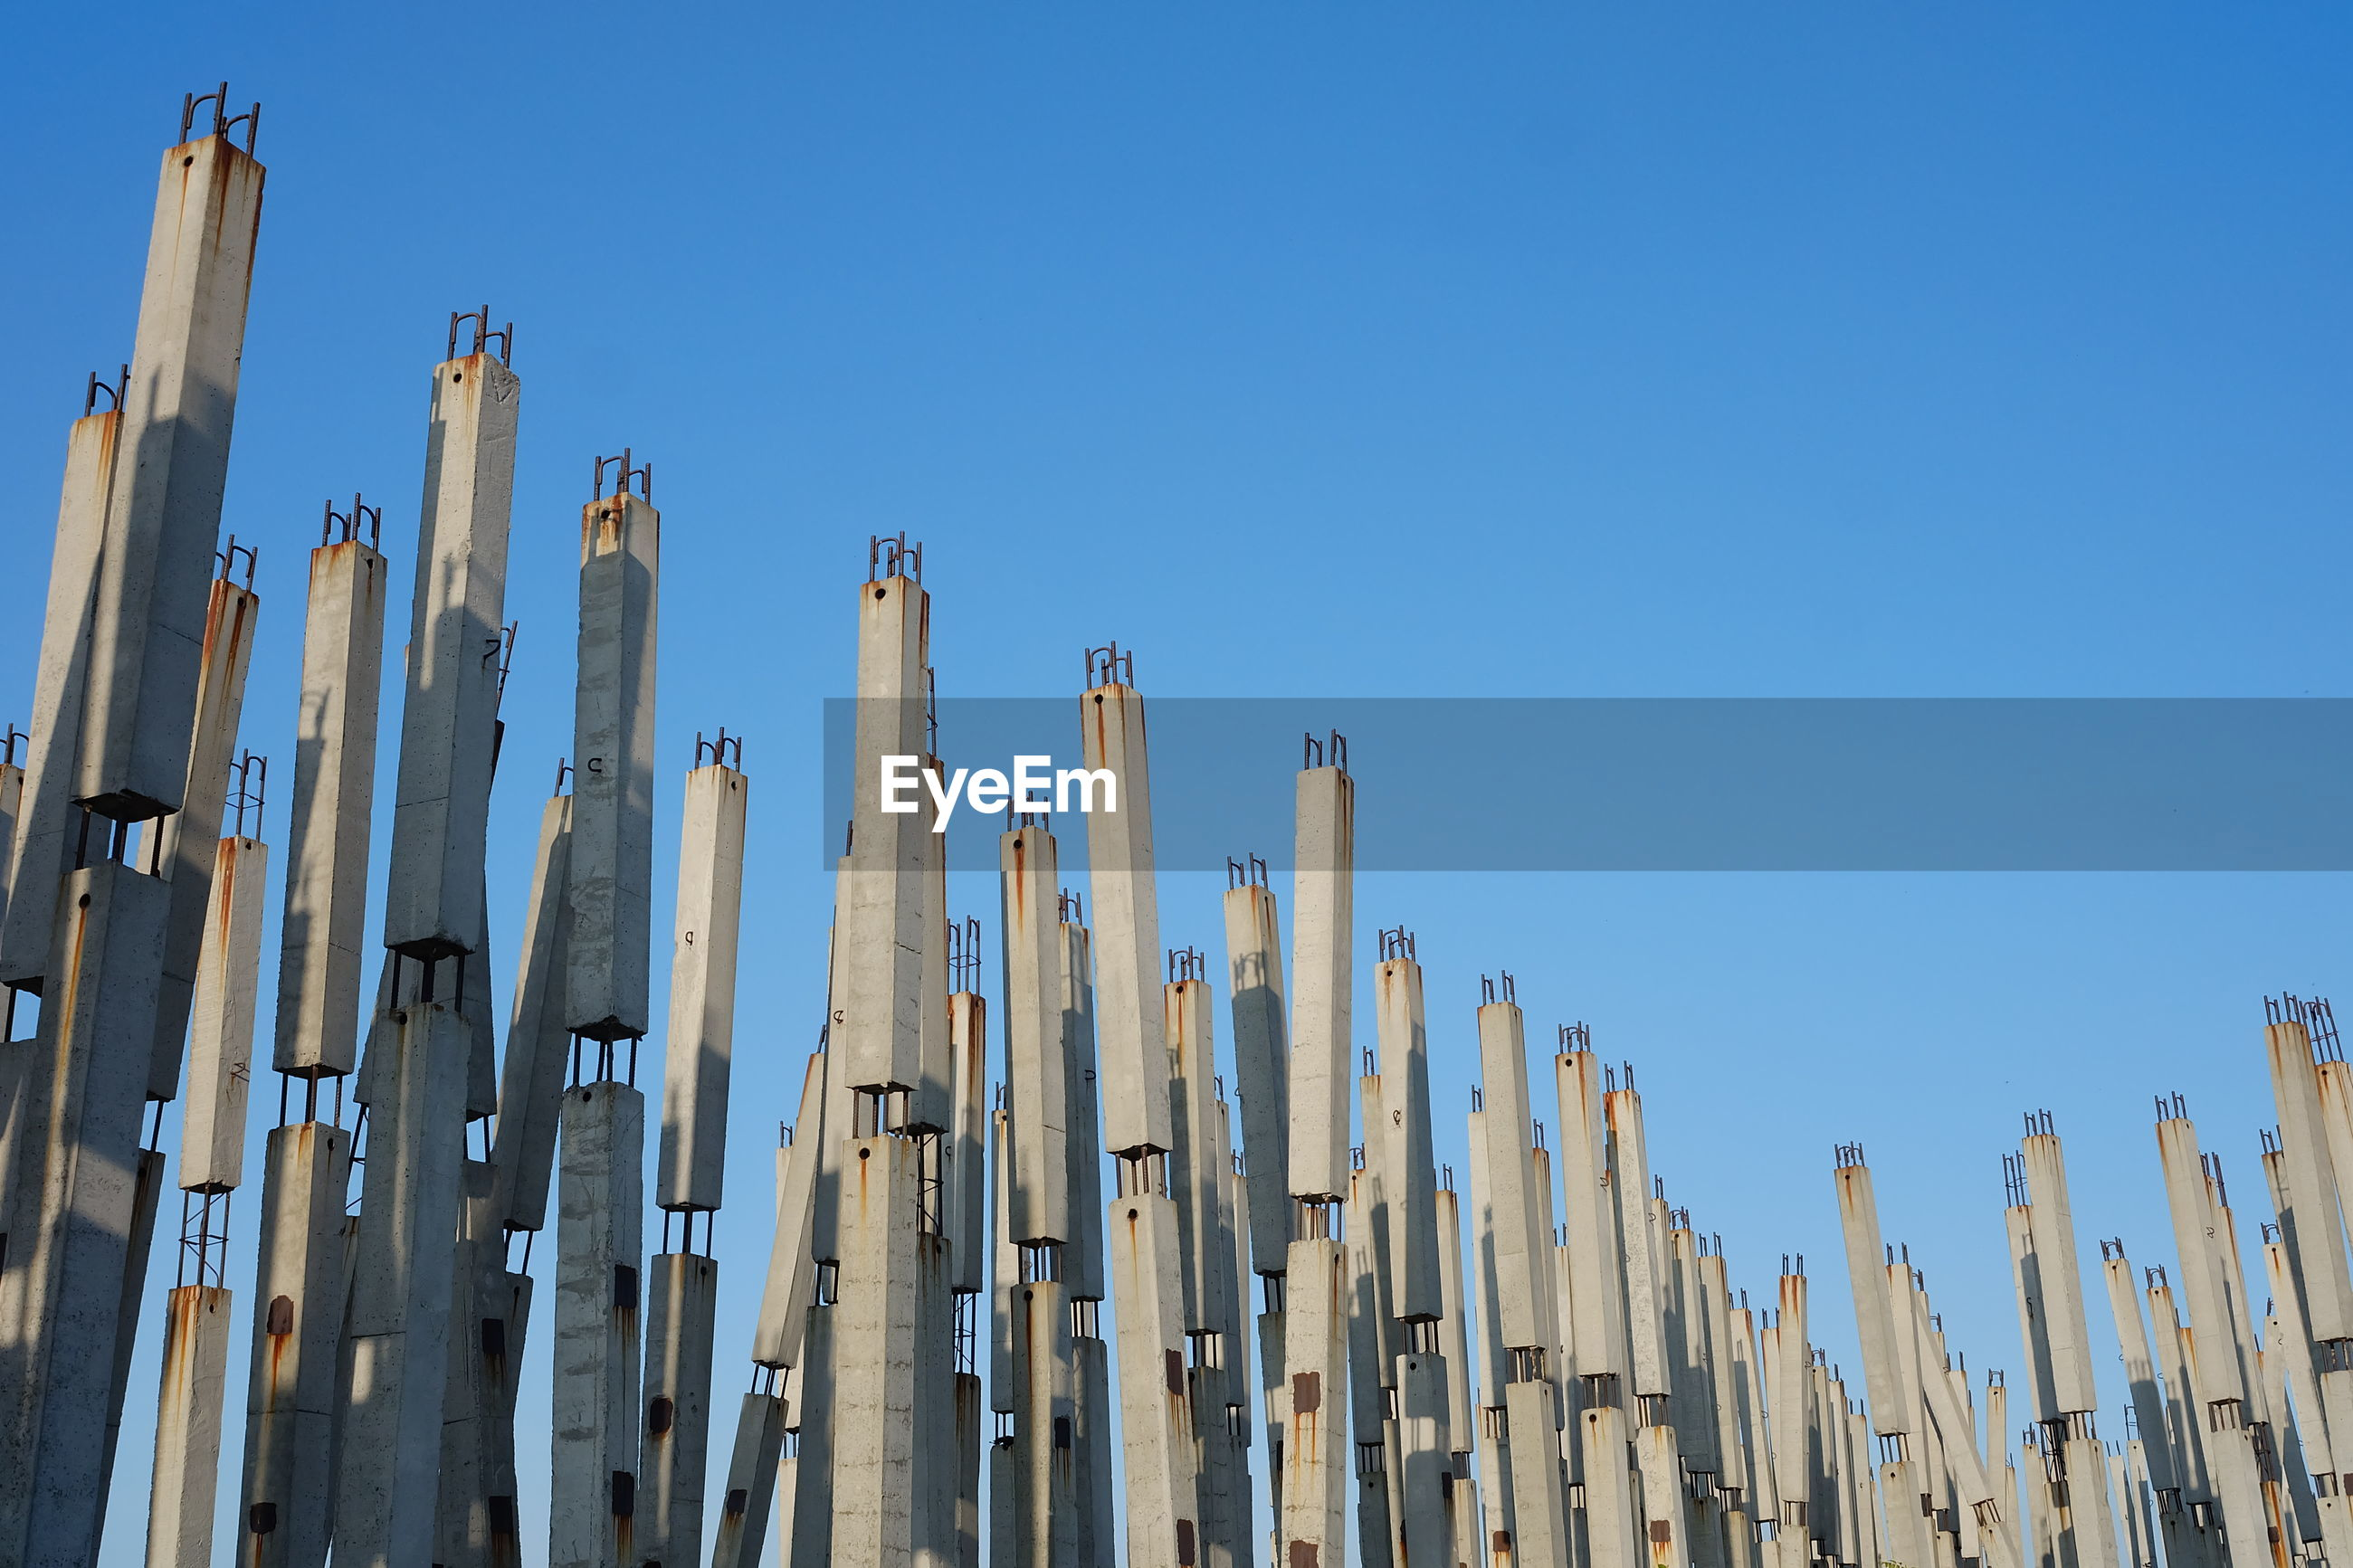 LOW ANGLE VIEW OF BAMBOO AGAINST BLUE SKY